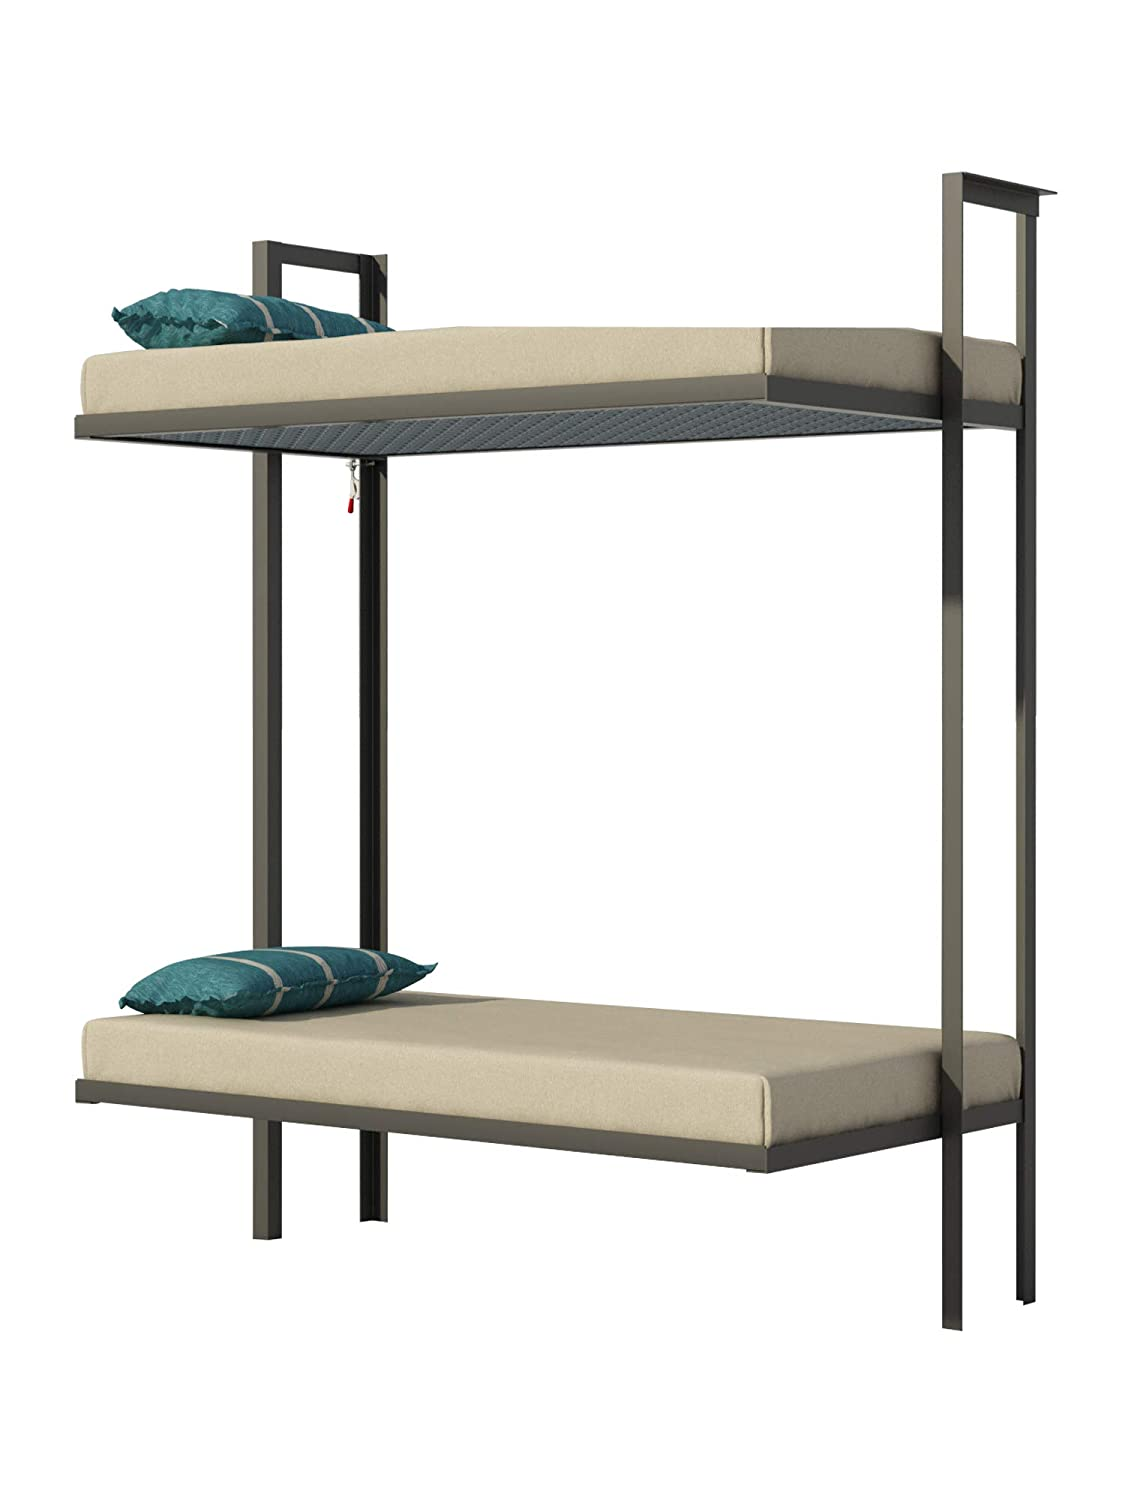 Amazon.com: Folding Bunk Bed Plans DIY Bedroom Furniture ...